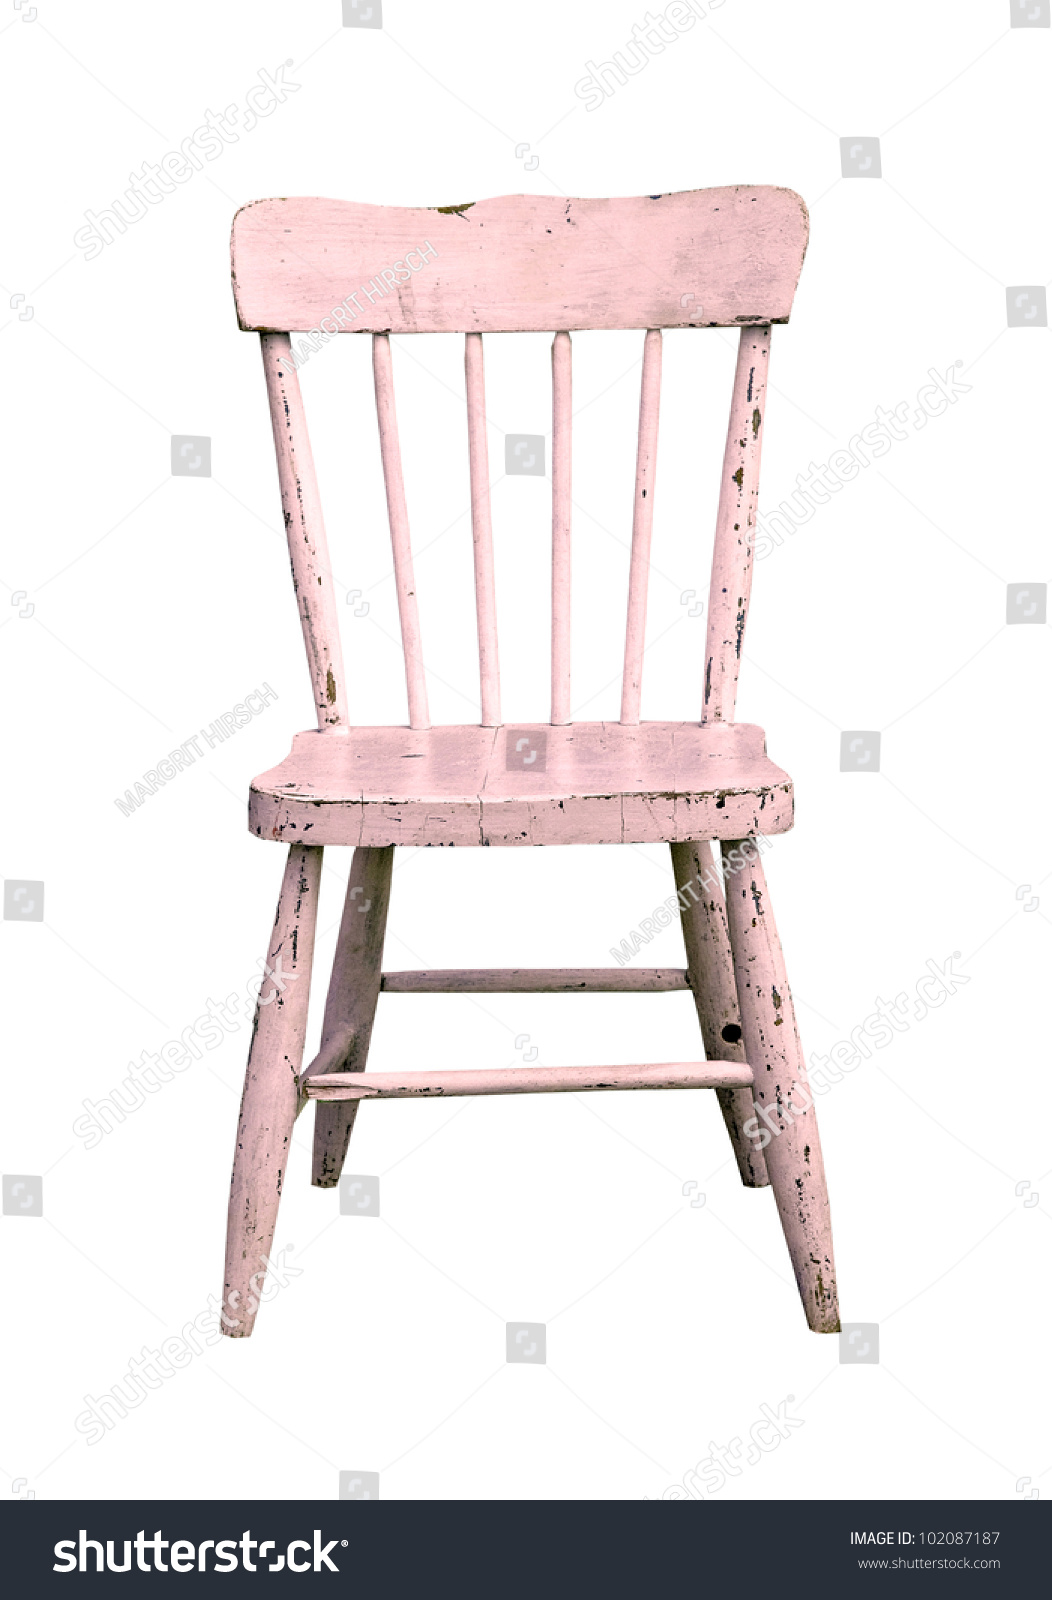 Aged Pink Wooden Child S Chair On A White Background Stock